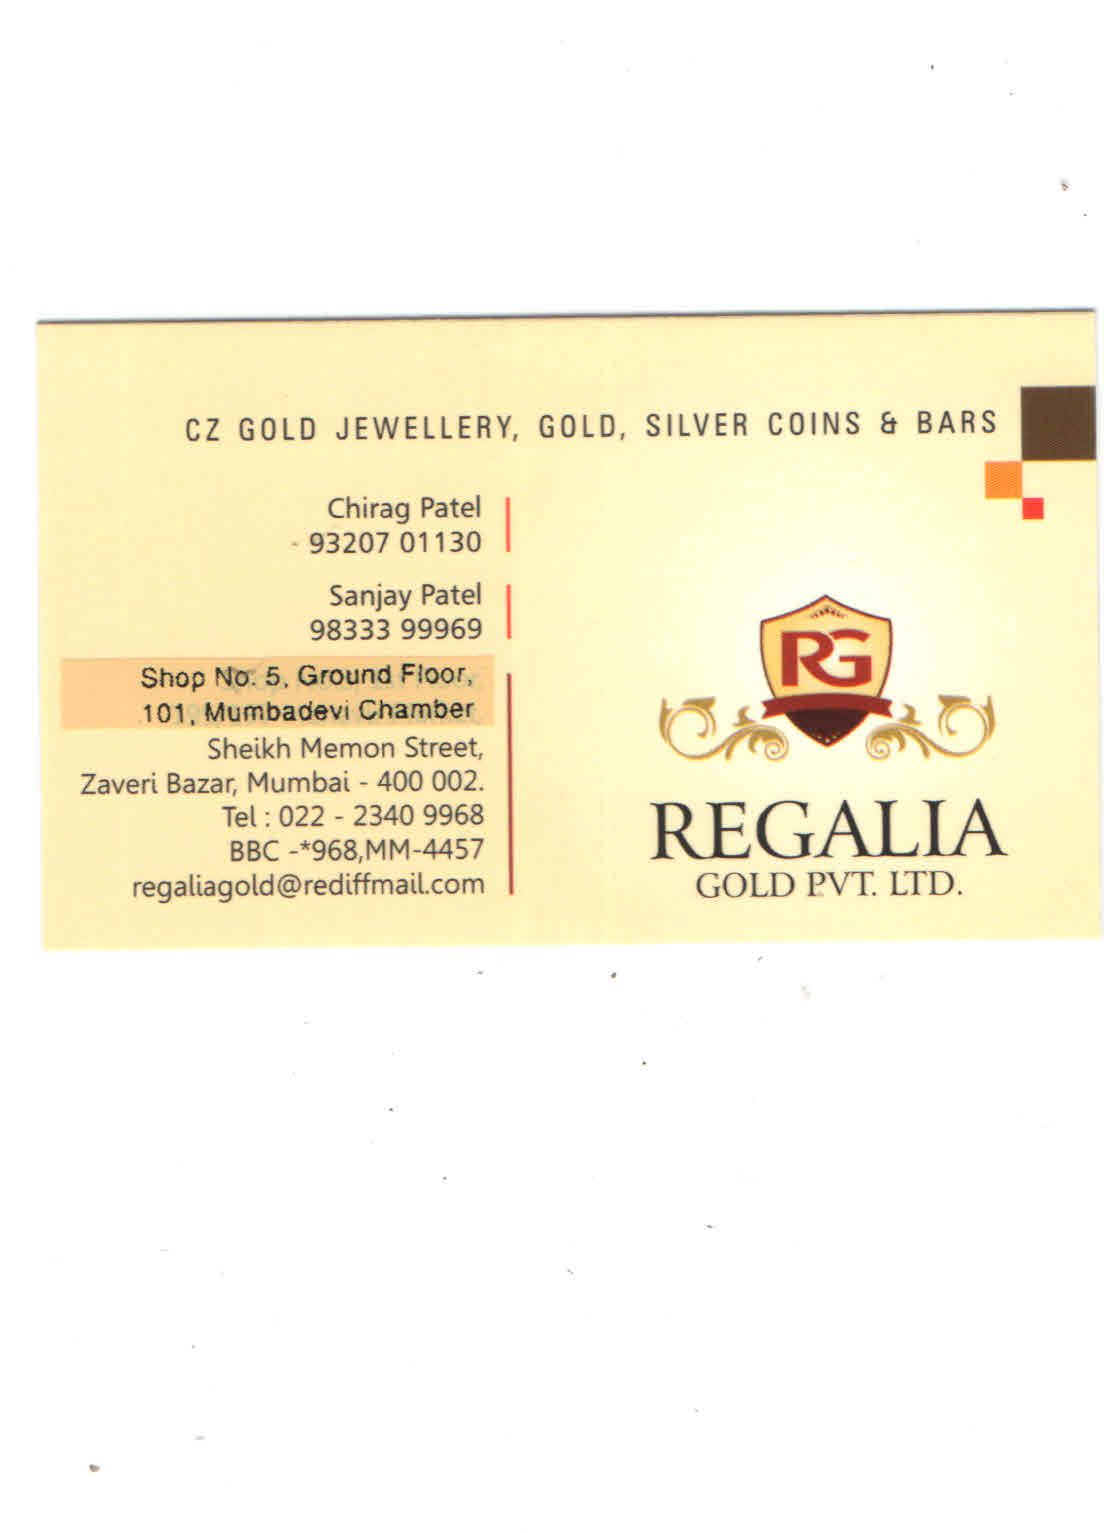 REGALIA GOLD PRIVATE LIMITED